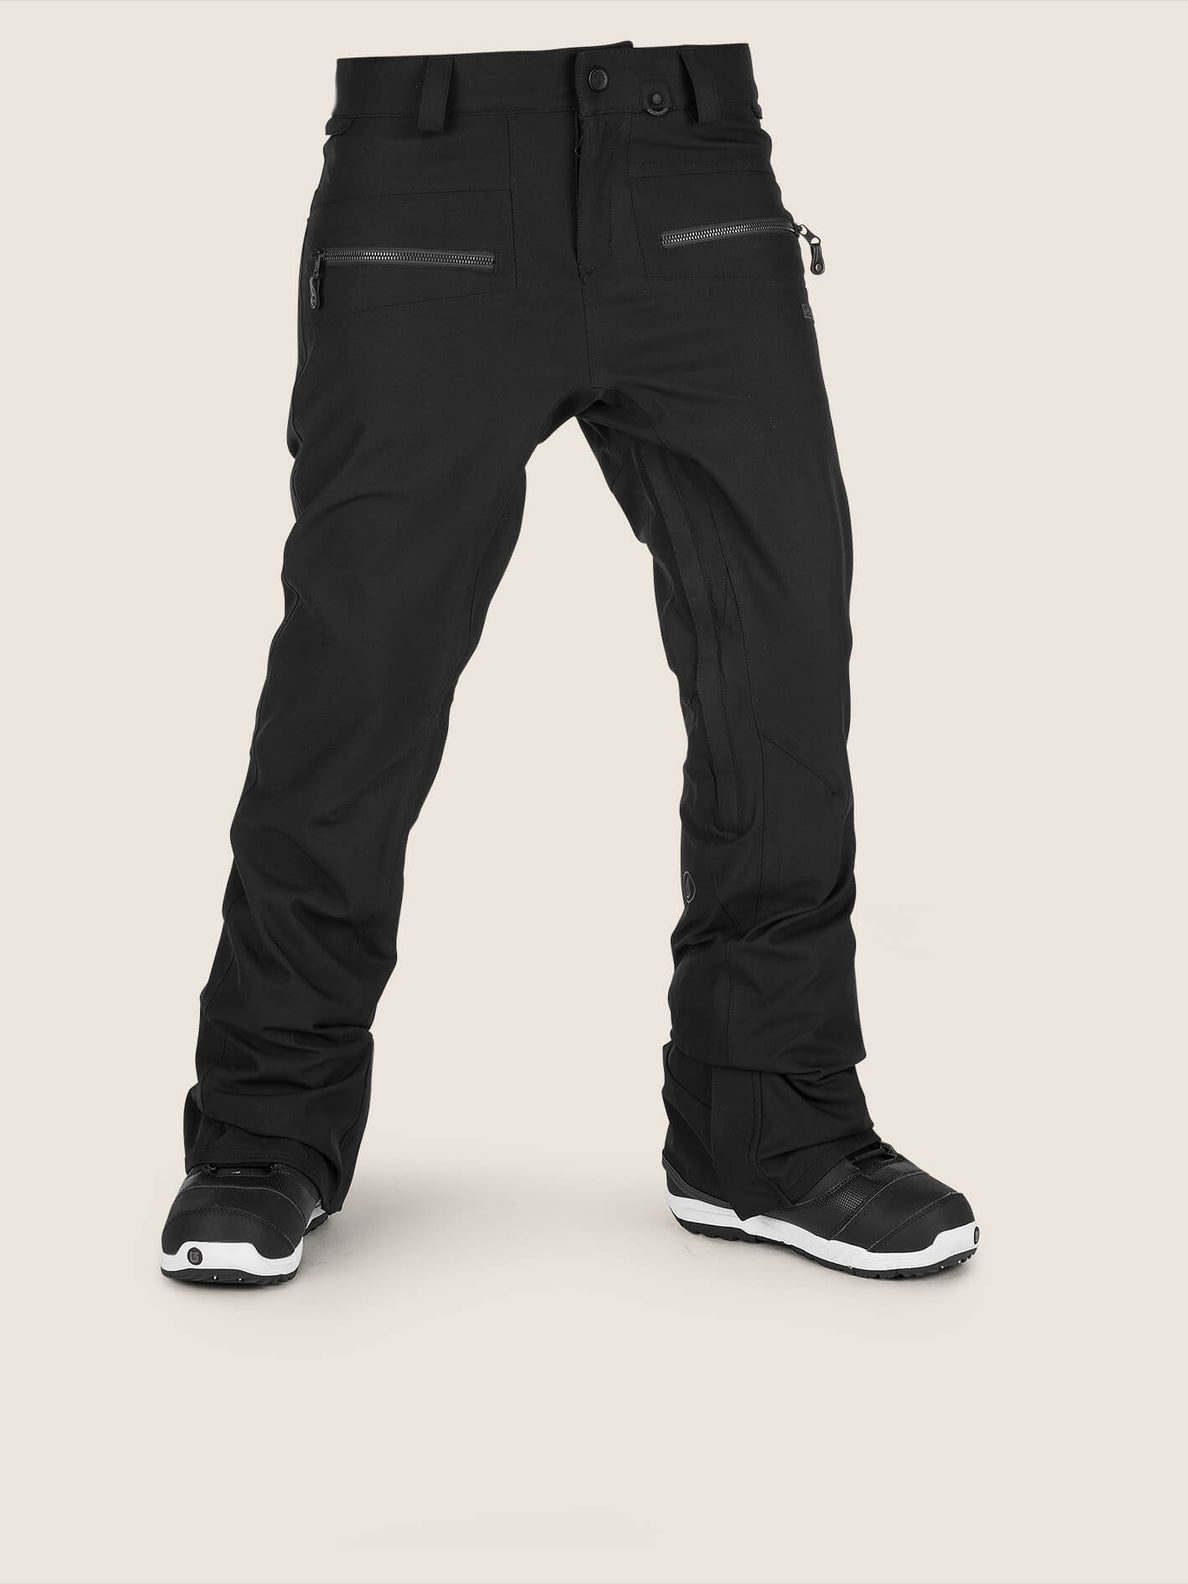 Iron Stretch Pant In Black, Front View